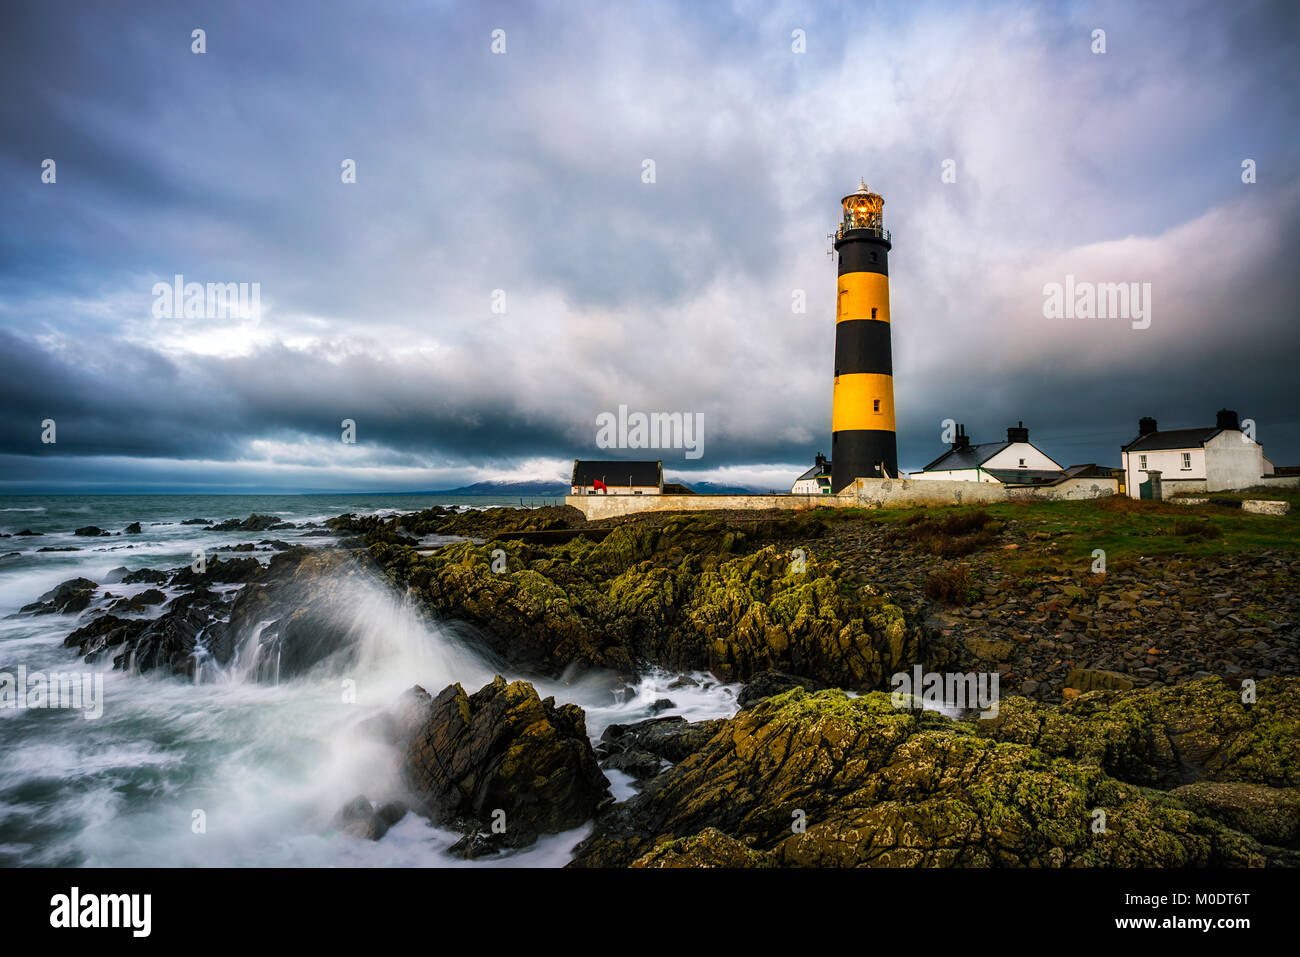 St Johns Point Lighthouse in County Down - Northern Ireland - Stock Image